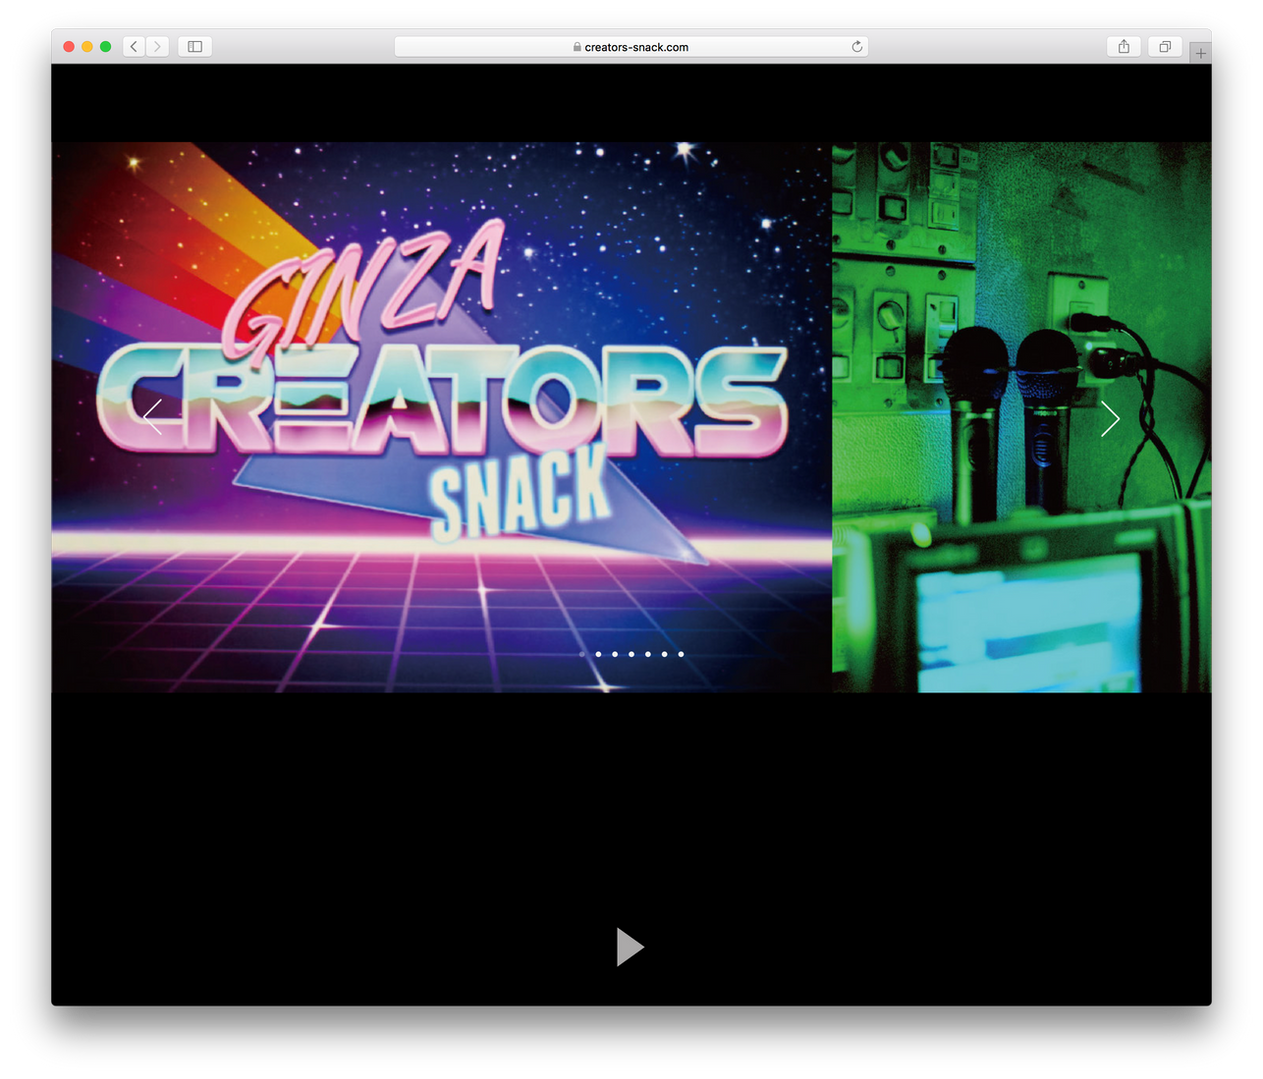 CREATORS SNACK / Web Design